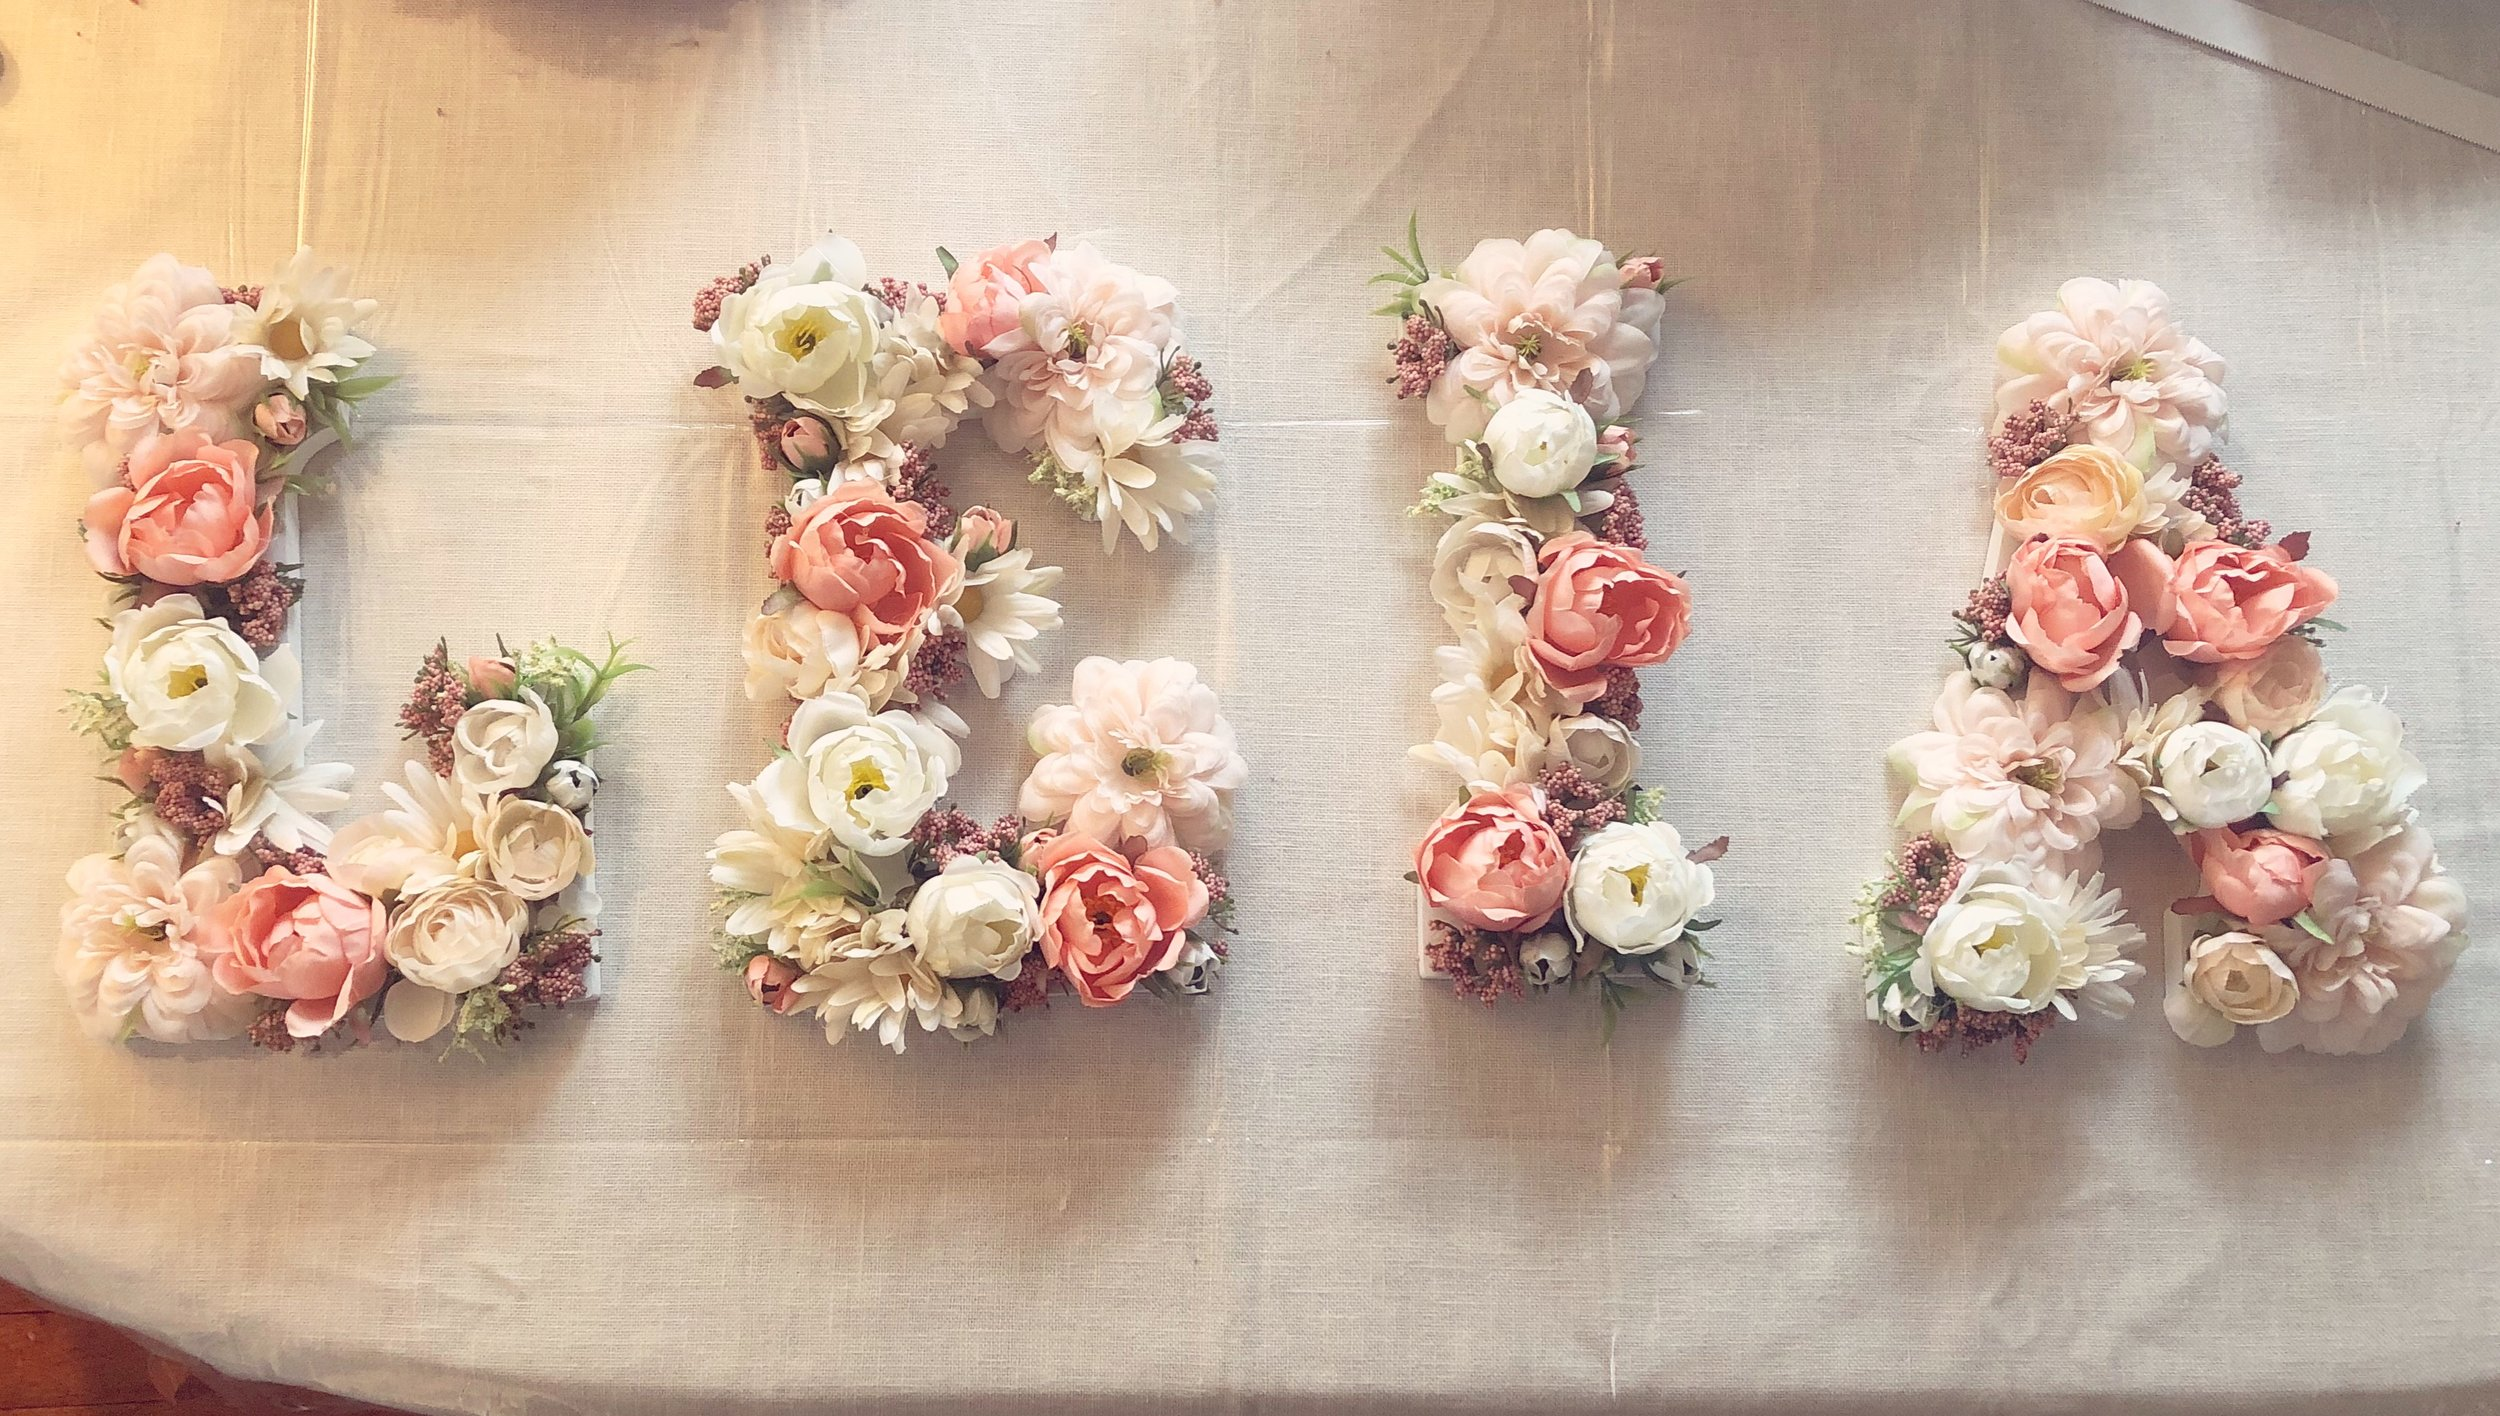 Floral Letter Workshop - CLICK HERE to schedule a private event.